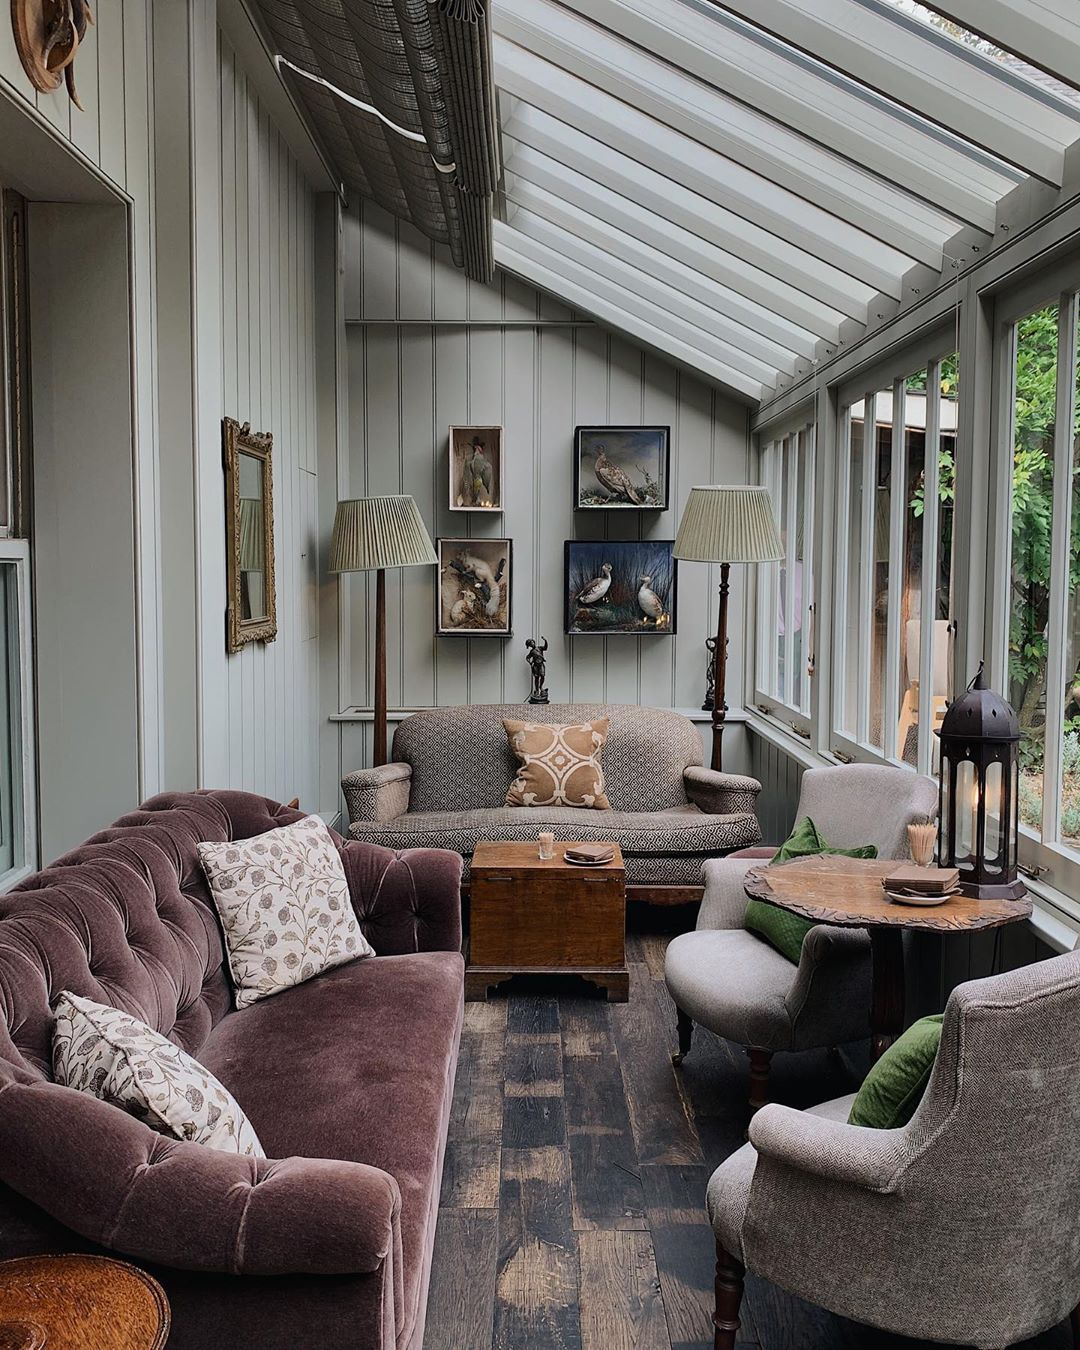 sunroom, black wooden floor, white wooden wall, glass wall, glass window ceiling, purple velvet sofa, grey chairs, wooden side table